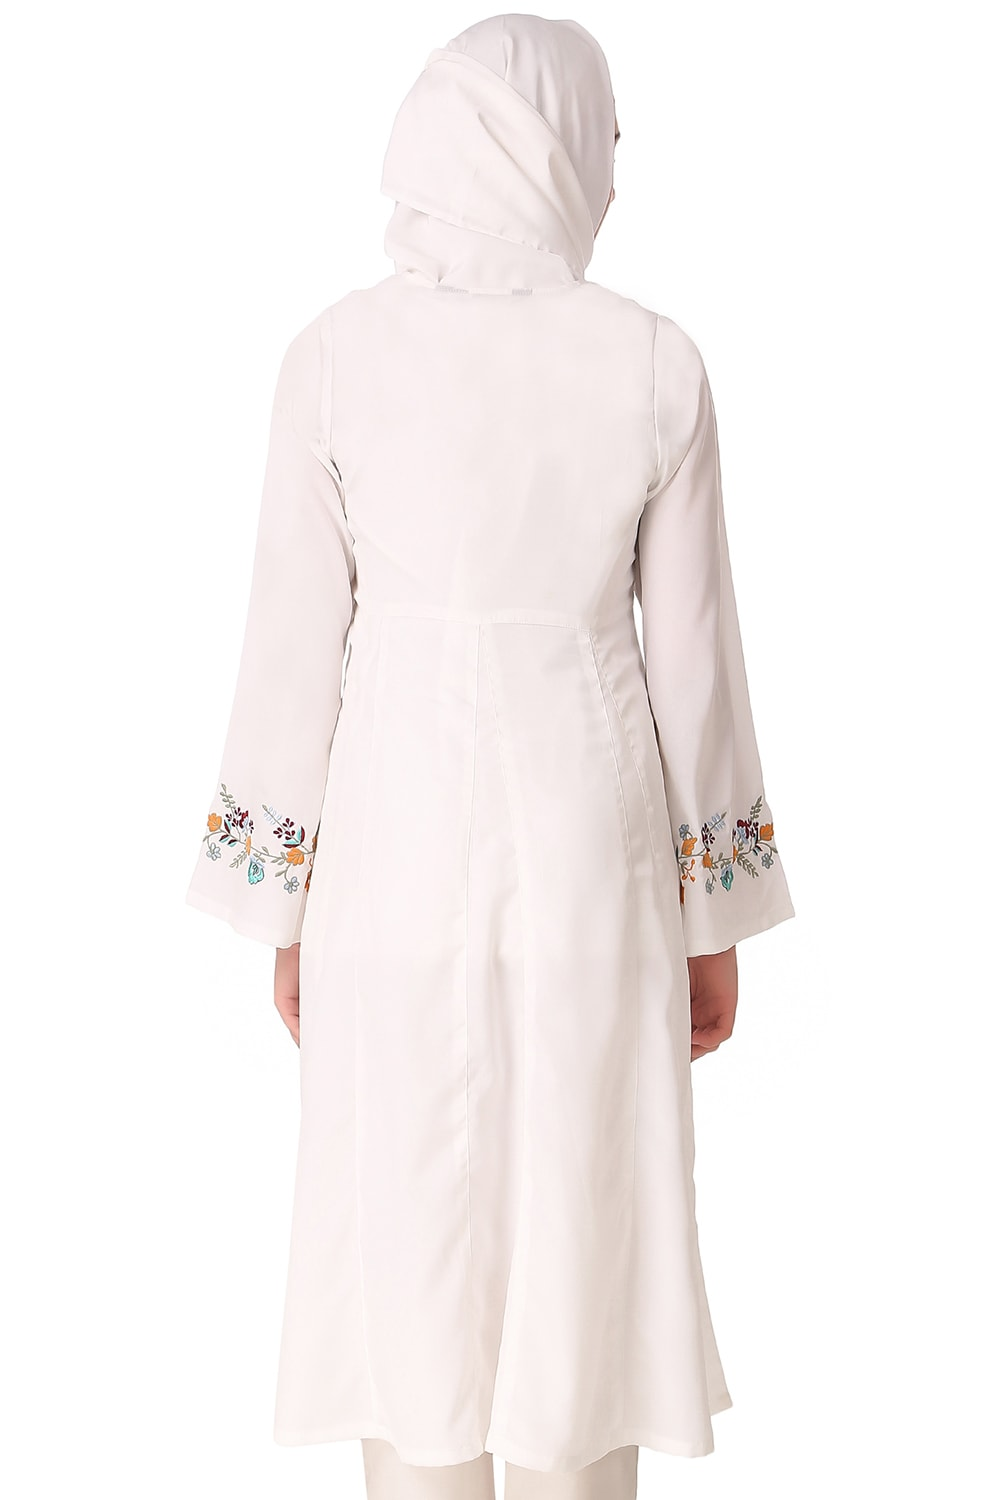 Colorful Embroidered Bell Sleeve White Tunic